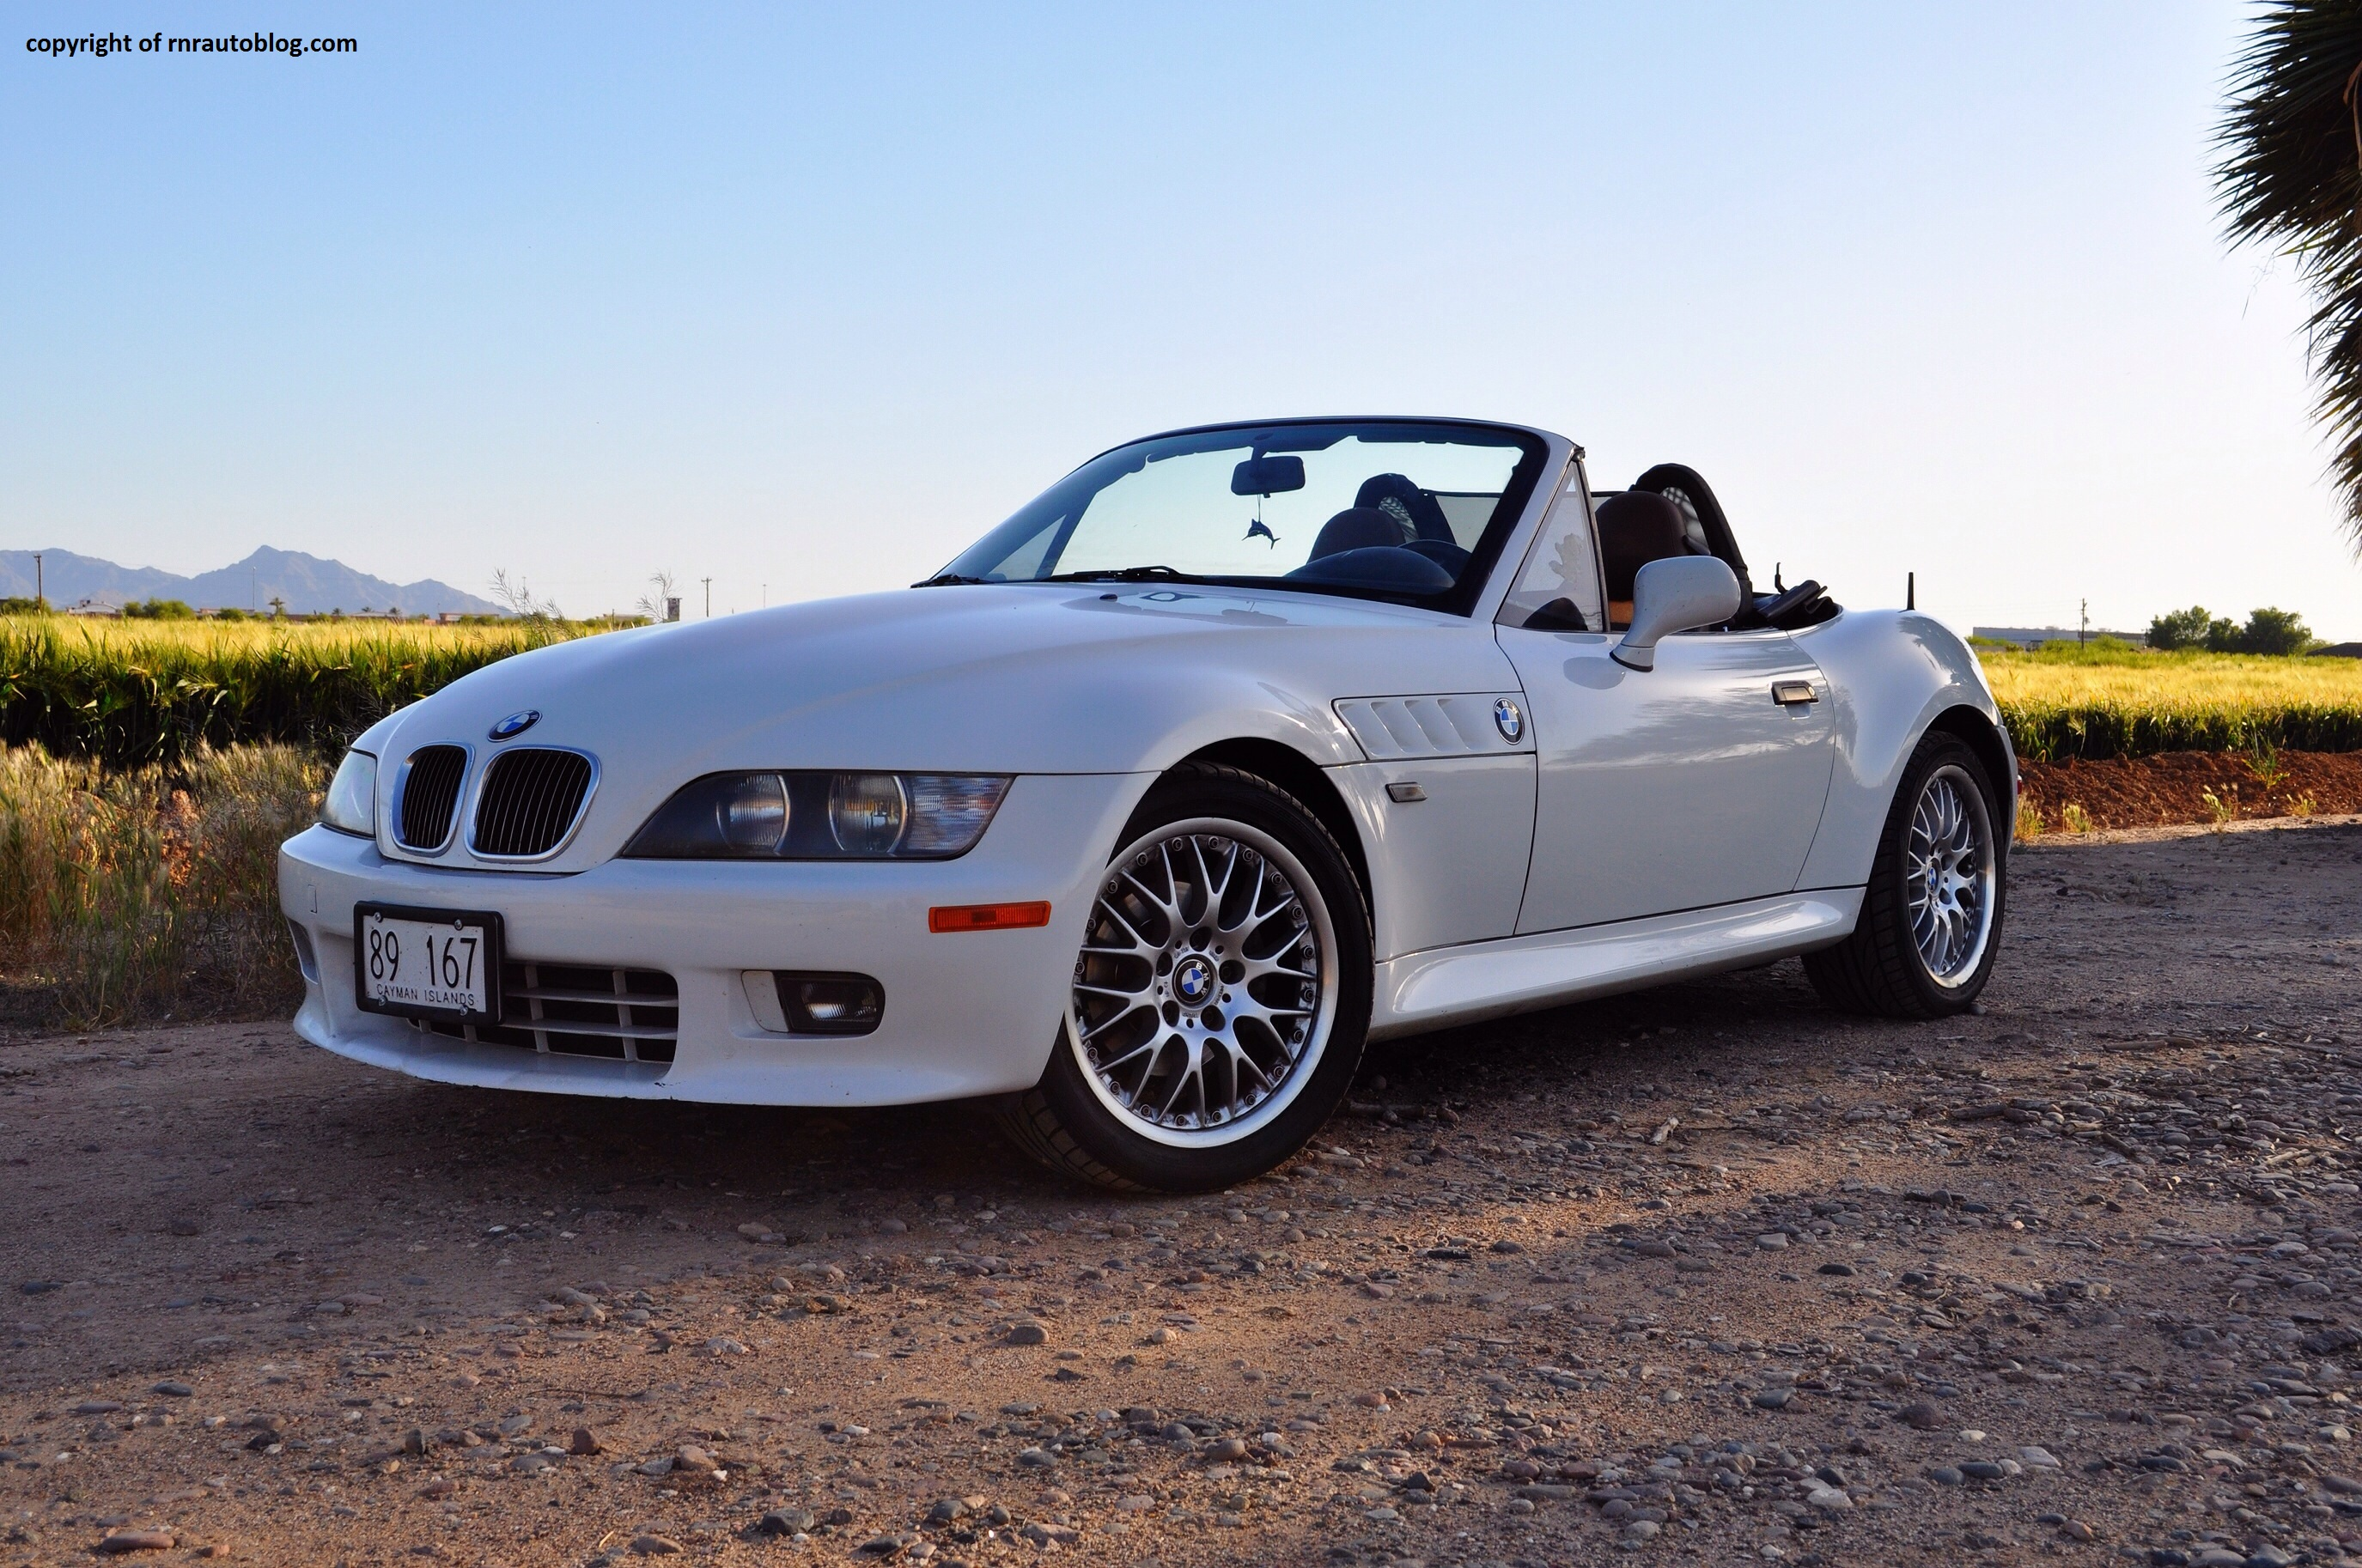 2000 bmw z3 road test rnr automotive blog. Black Bedroom Furniture Sets. Home Design Ideas